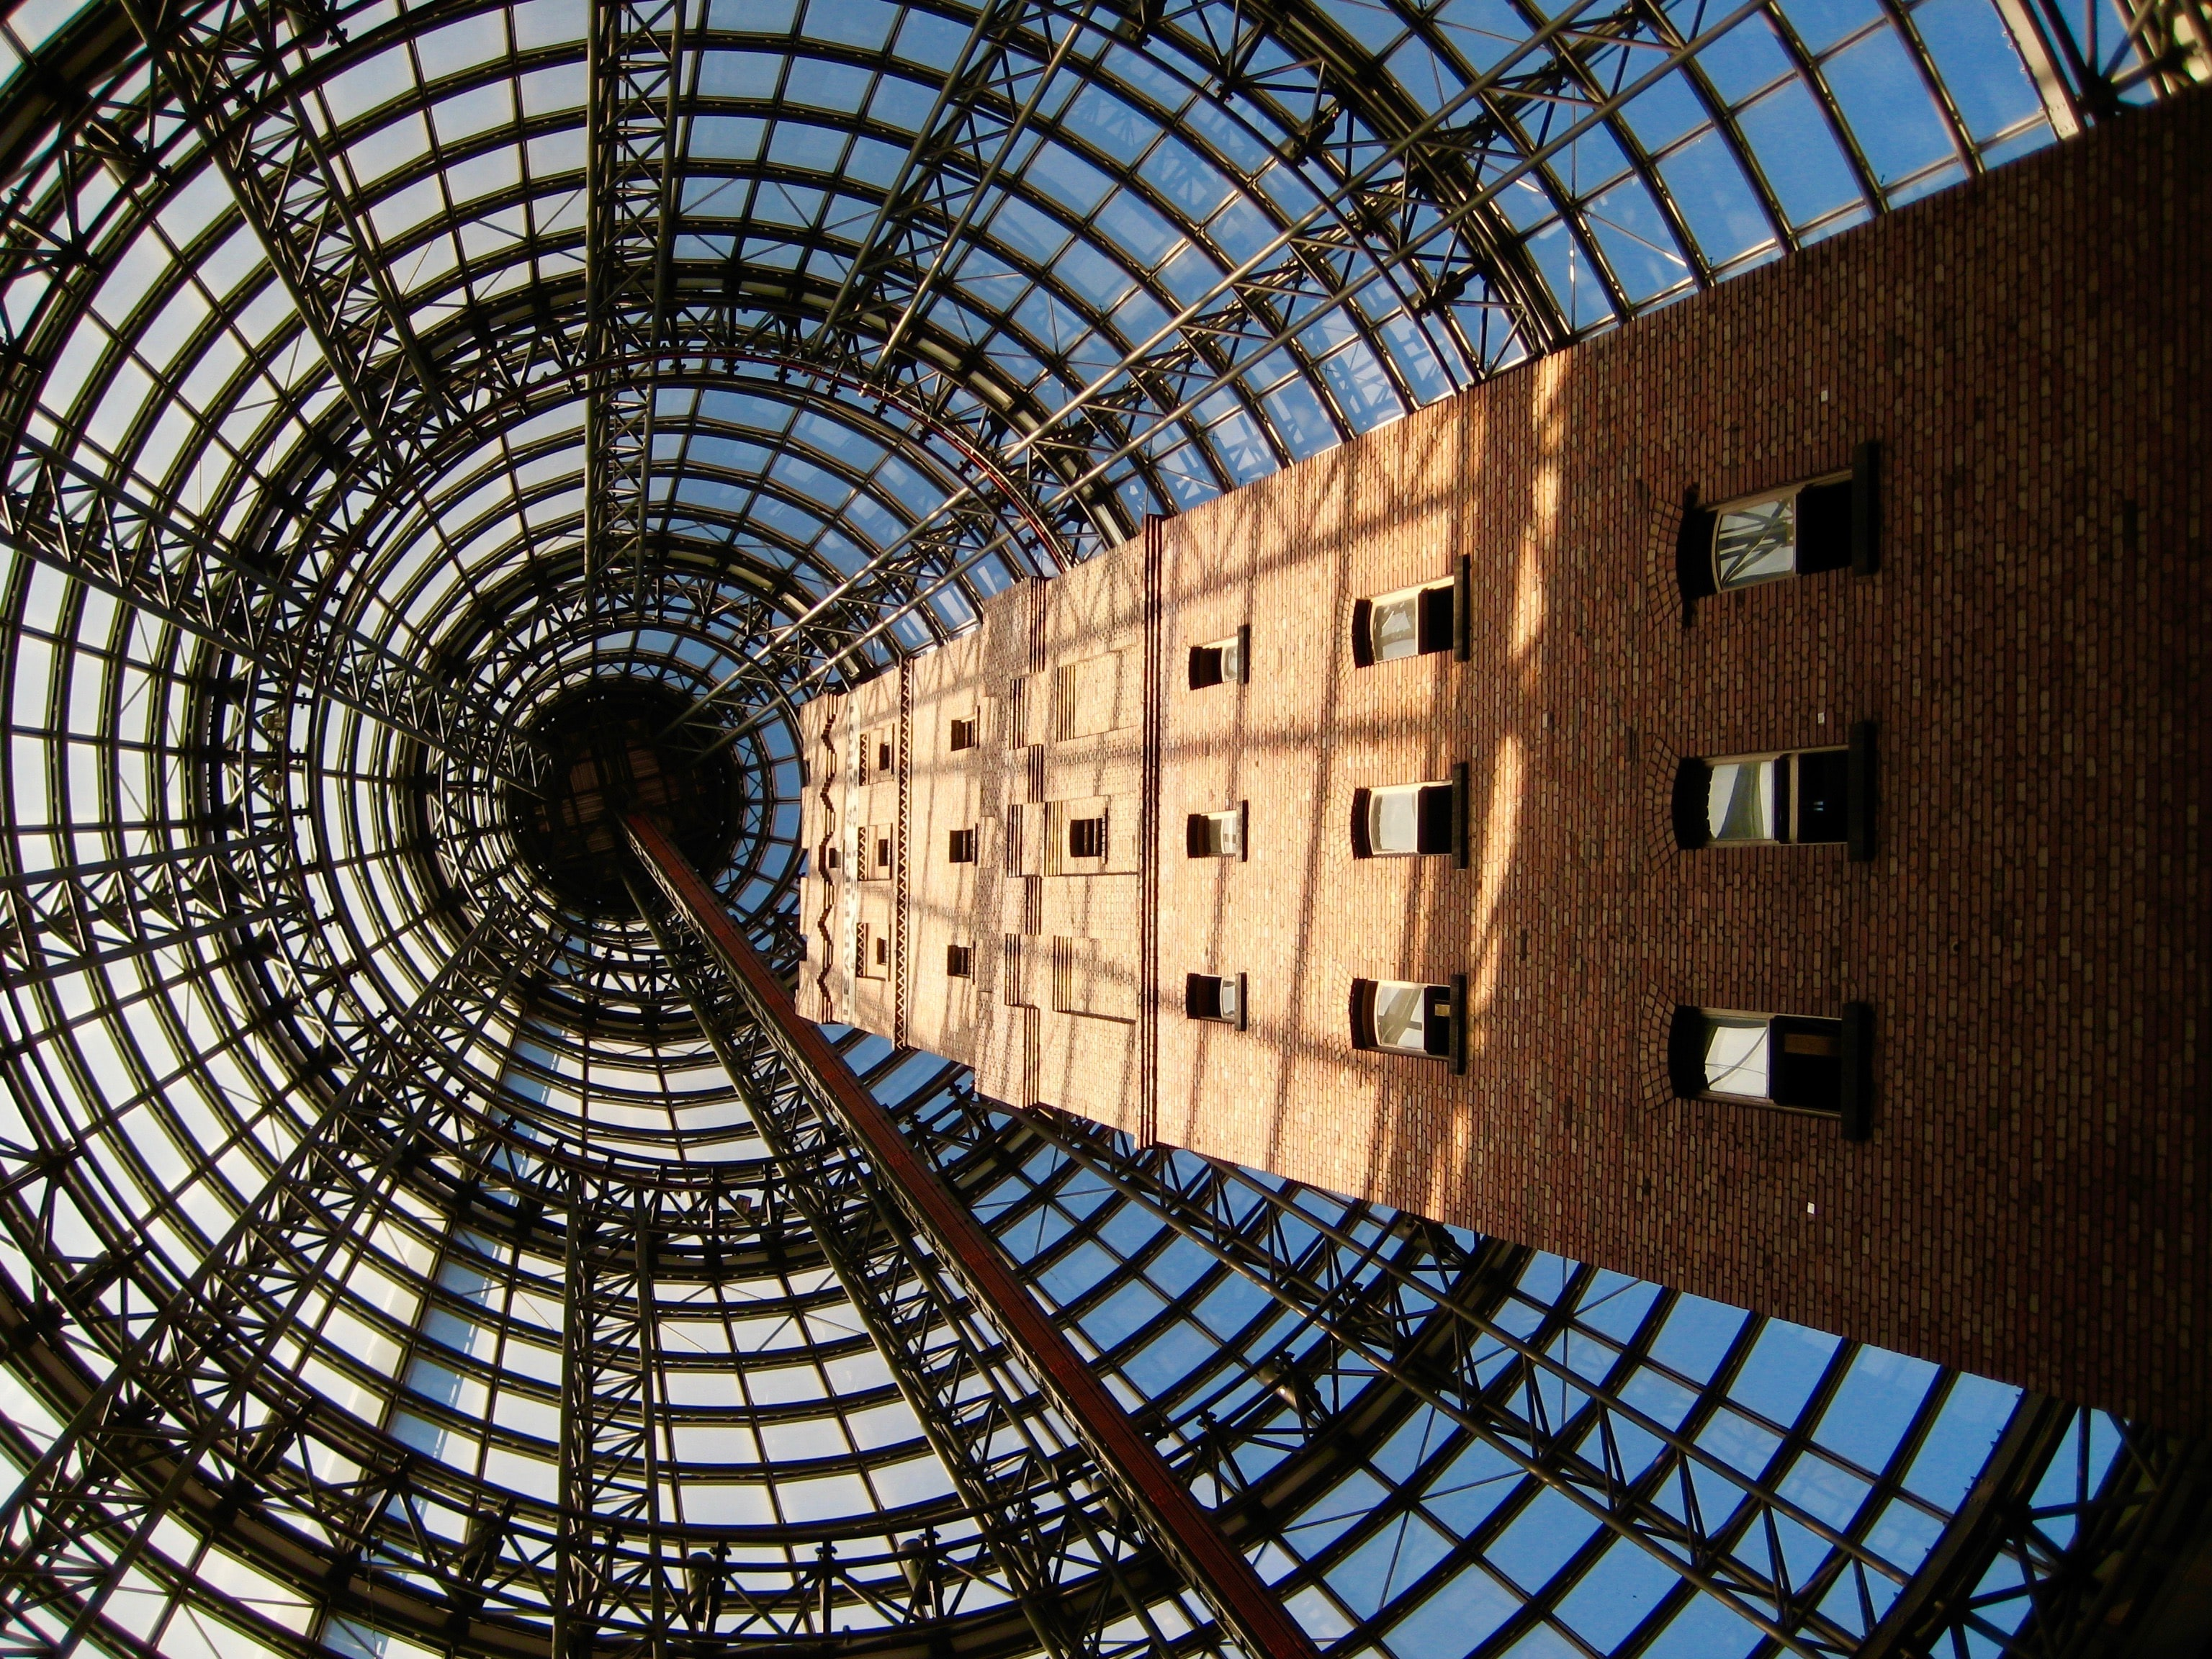 worms eye view of building inside clear glass dome